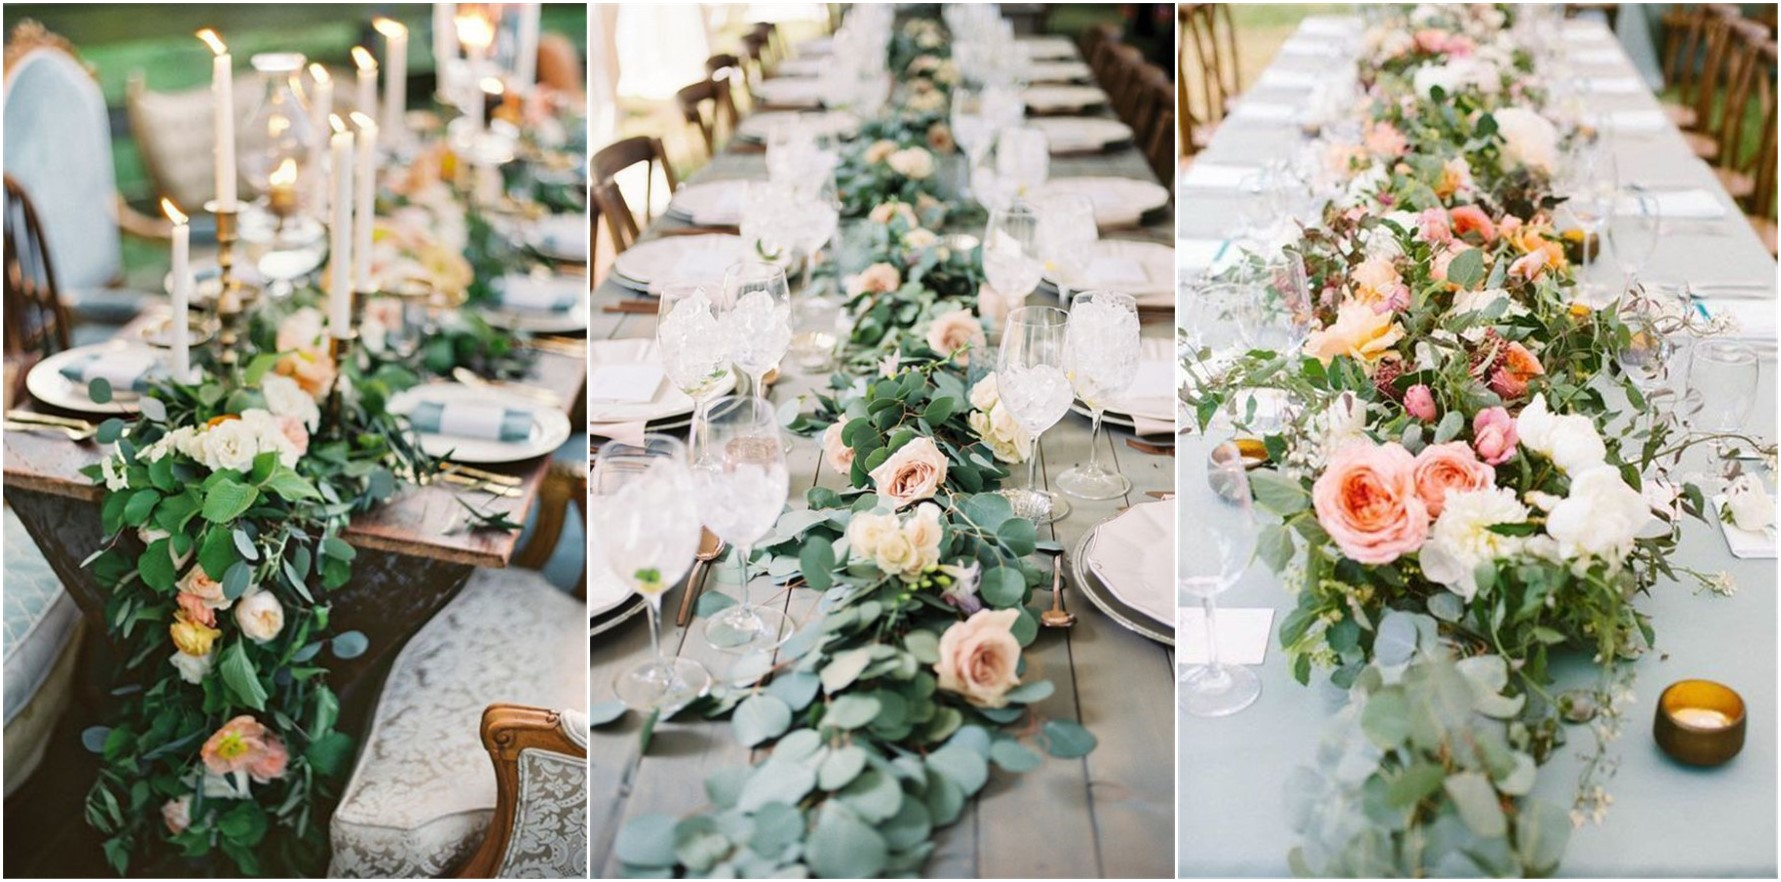 These 2018 Wedding Trends Will Leave Your Guests Impressed